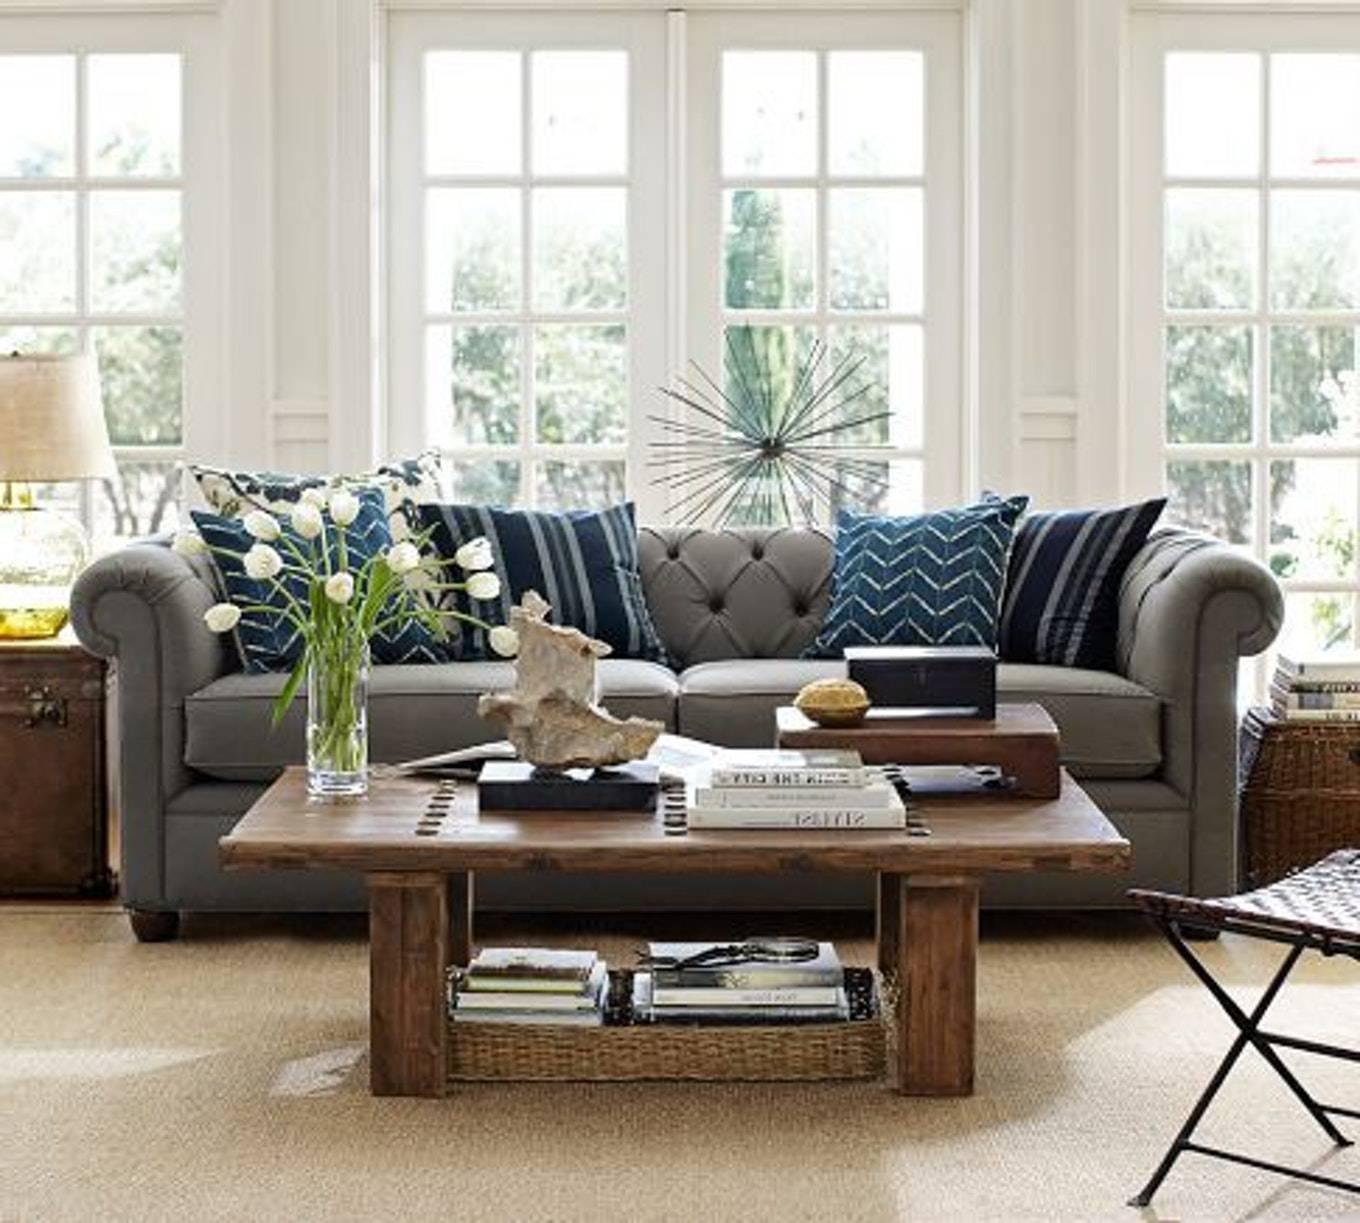 Pottery Barn Chesterfield Sofa - Militariart regarding Chesterfield Recliners (Image 21 of 30)